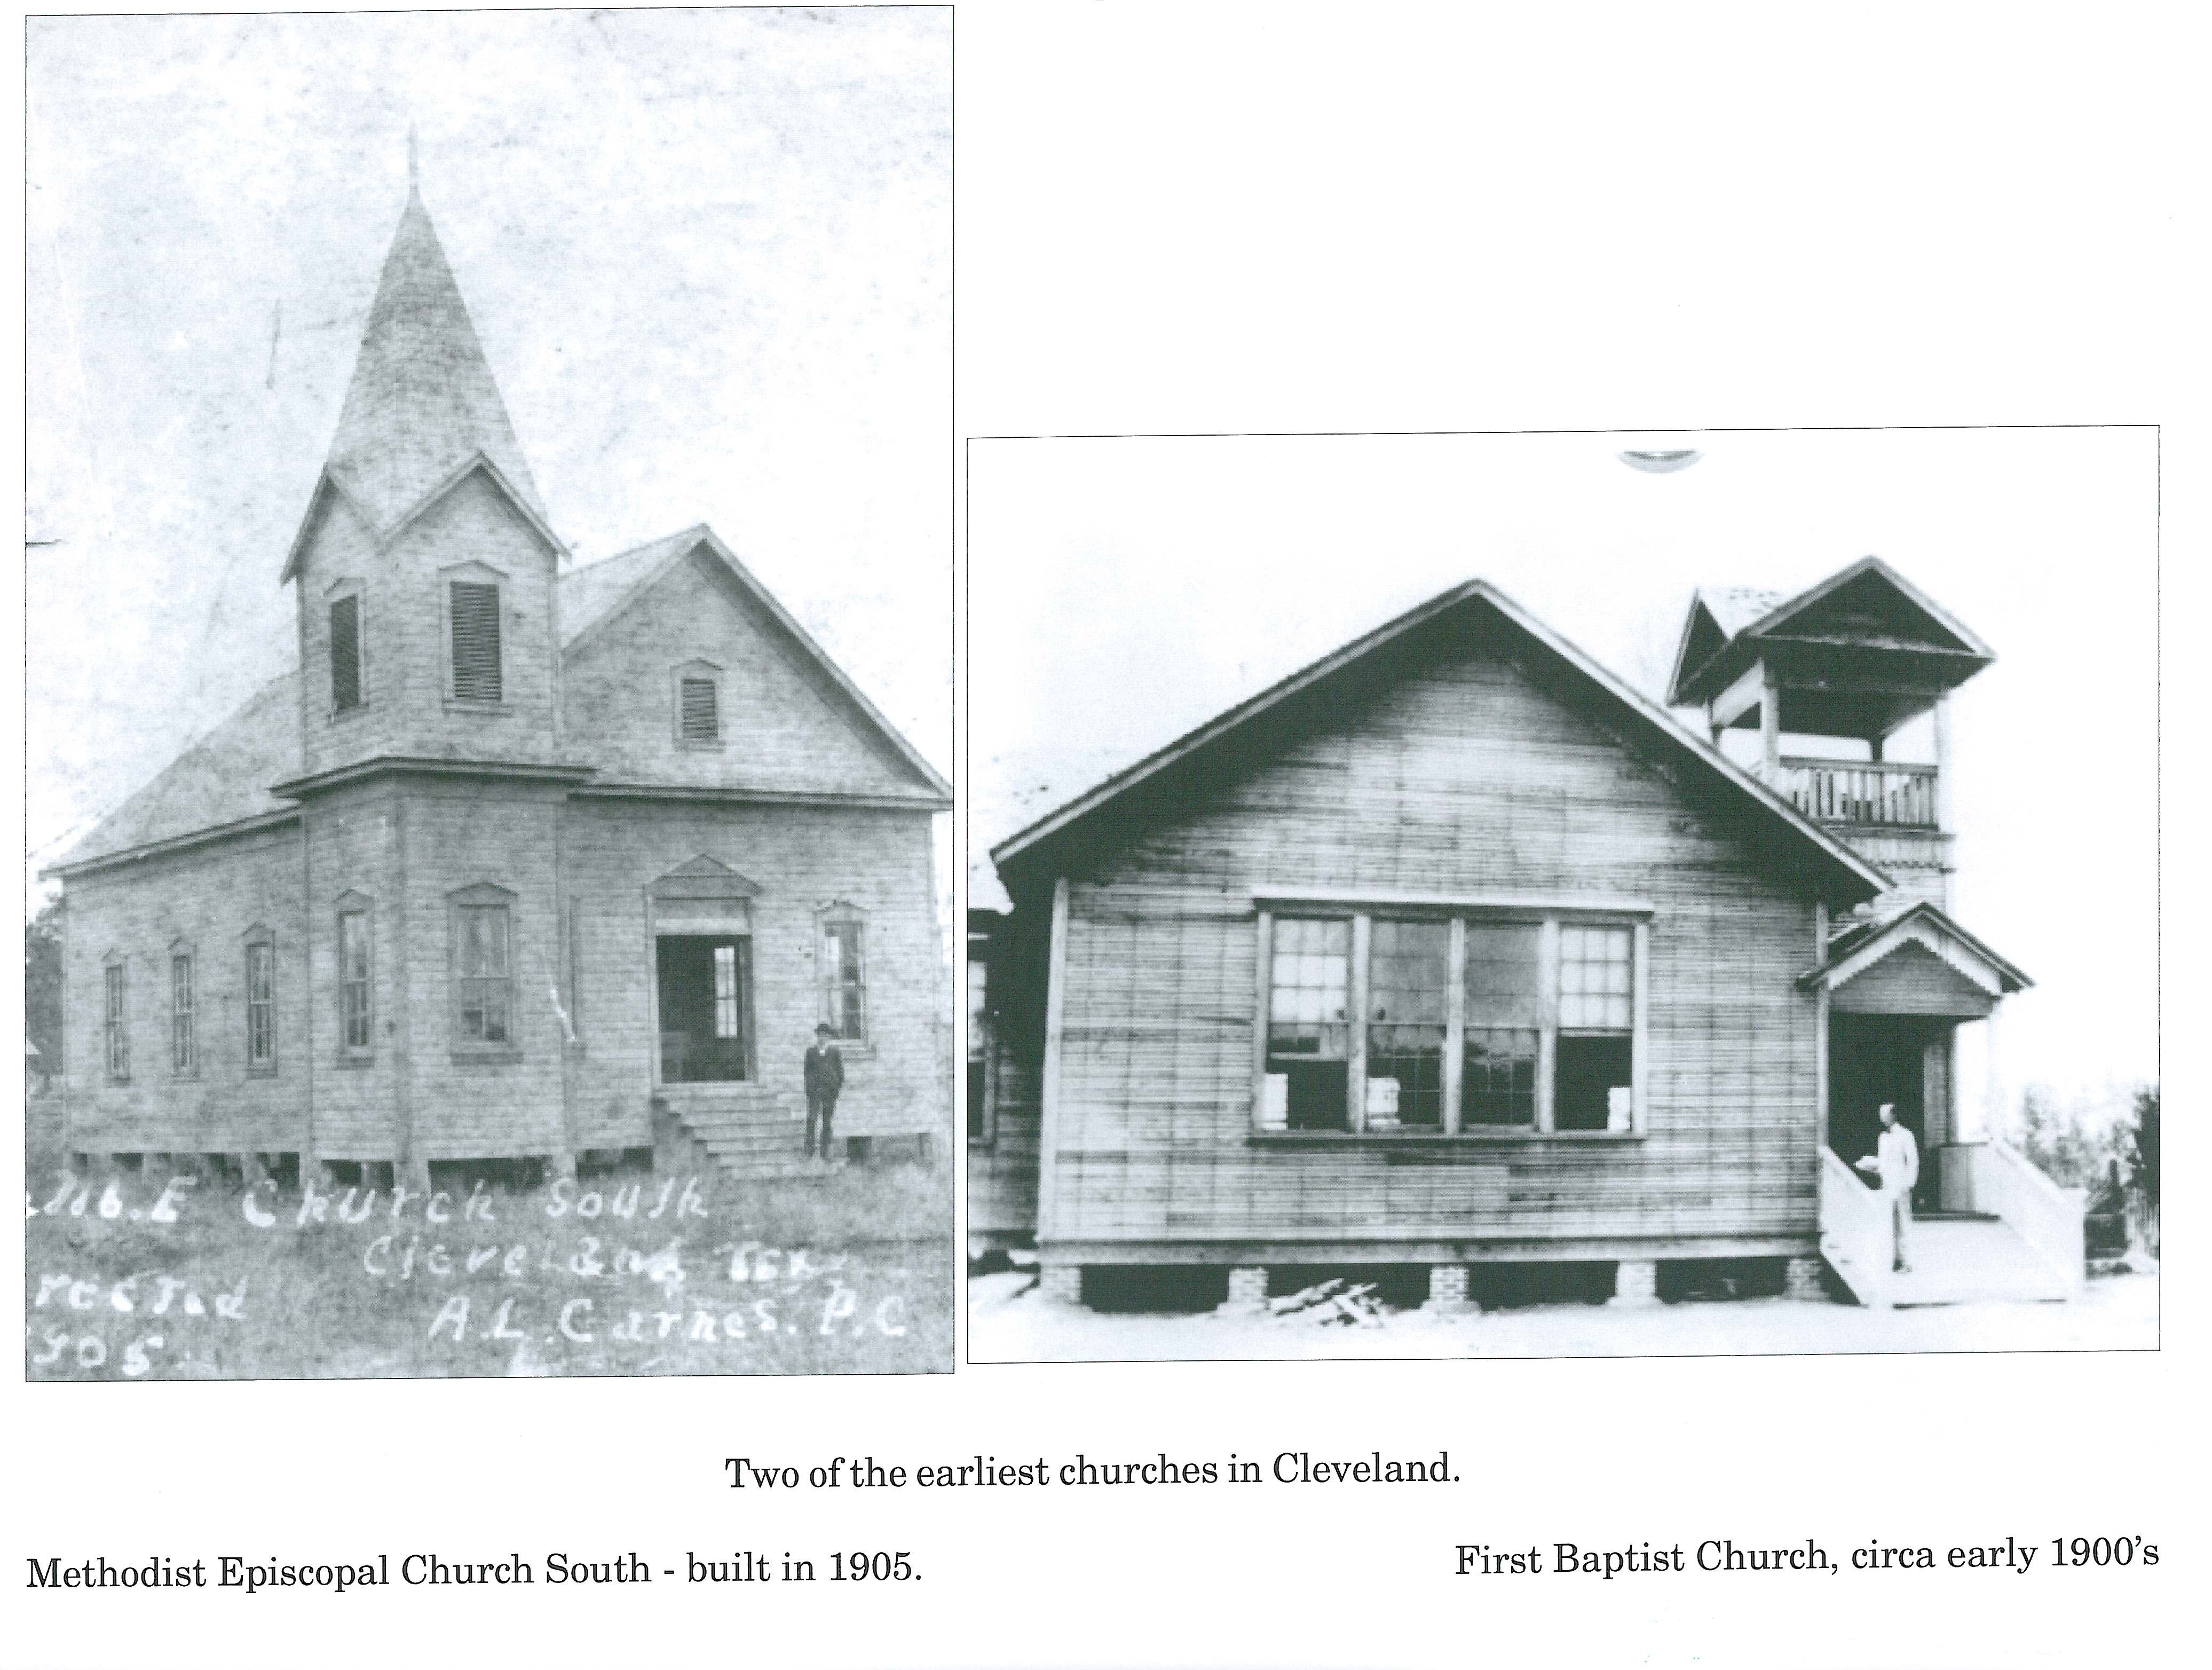 Methodist Episcopal Church South and First Baptist Church